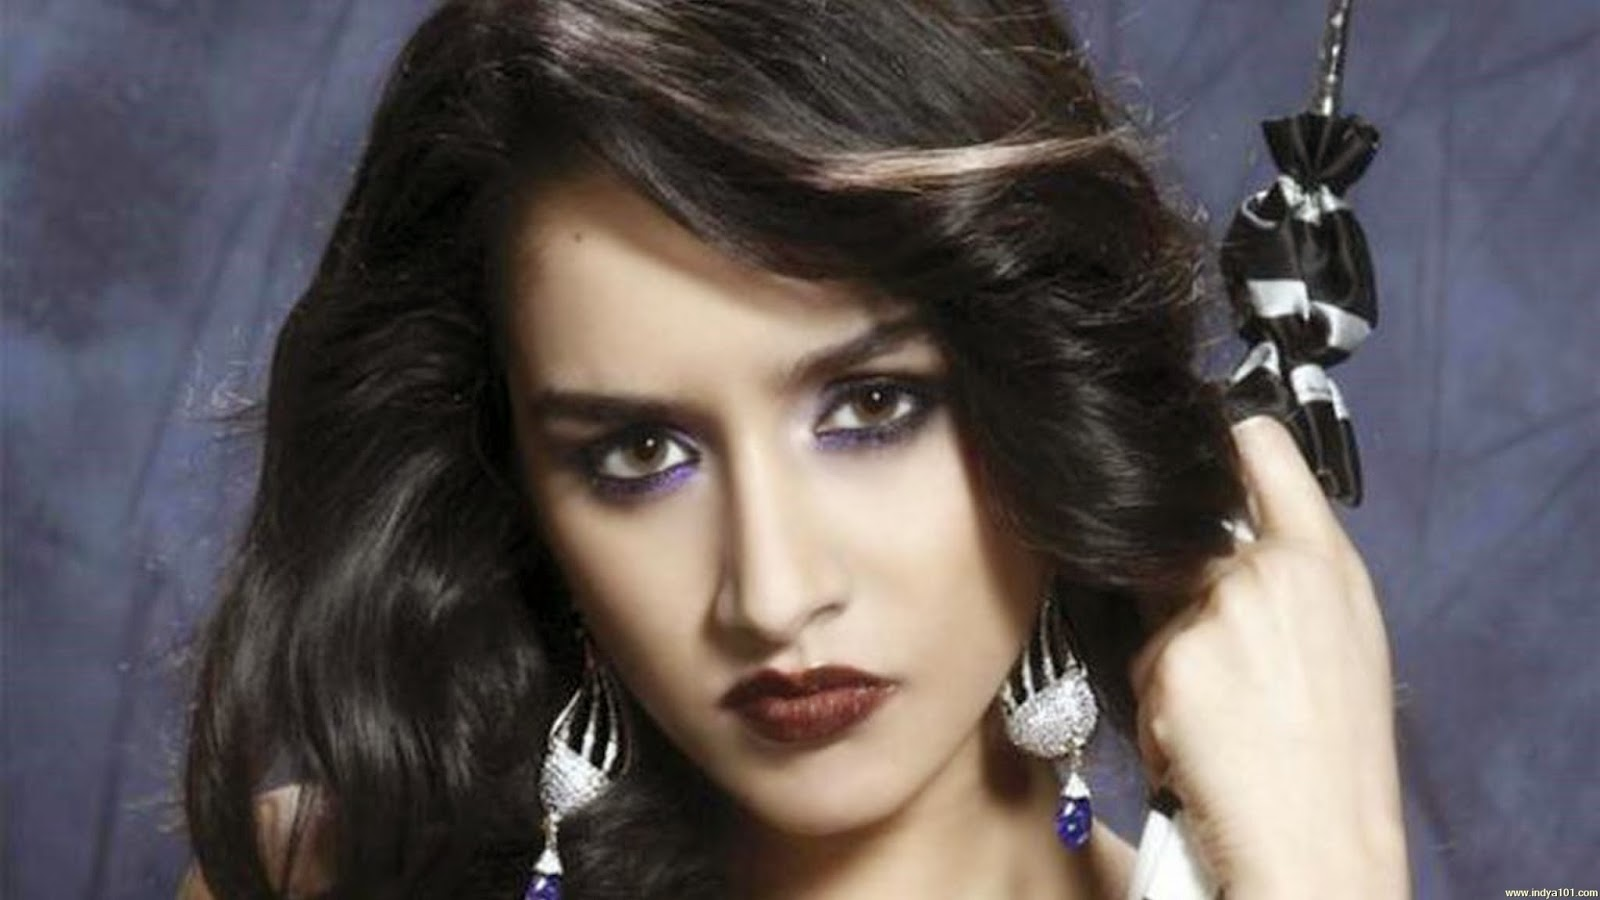 Shraddha Kapoors Angry look HD wallpaper Celebrity Hd Wallpapers 1600x900